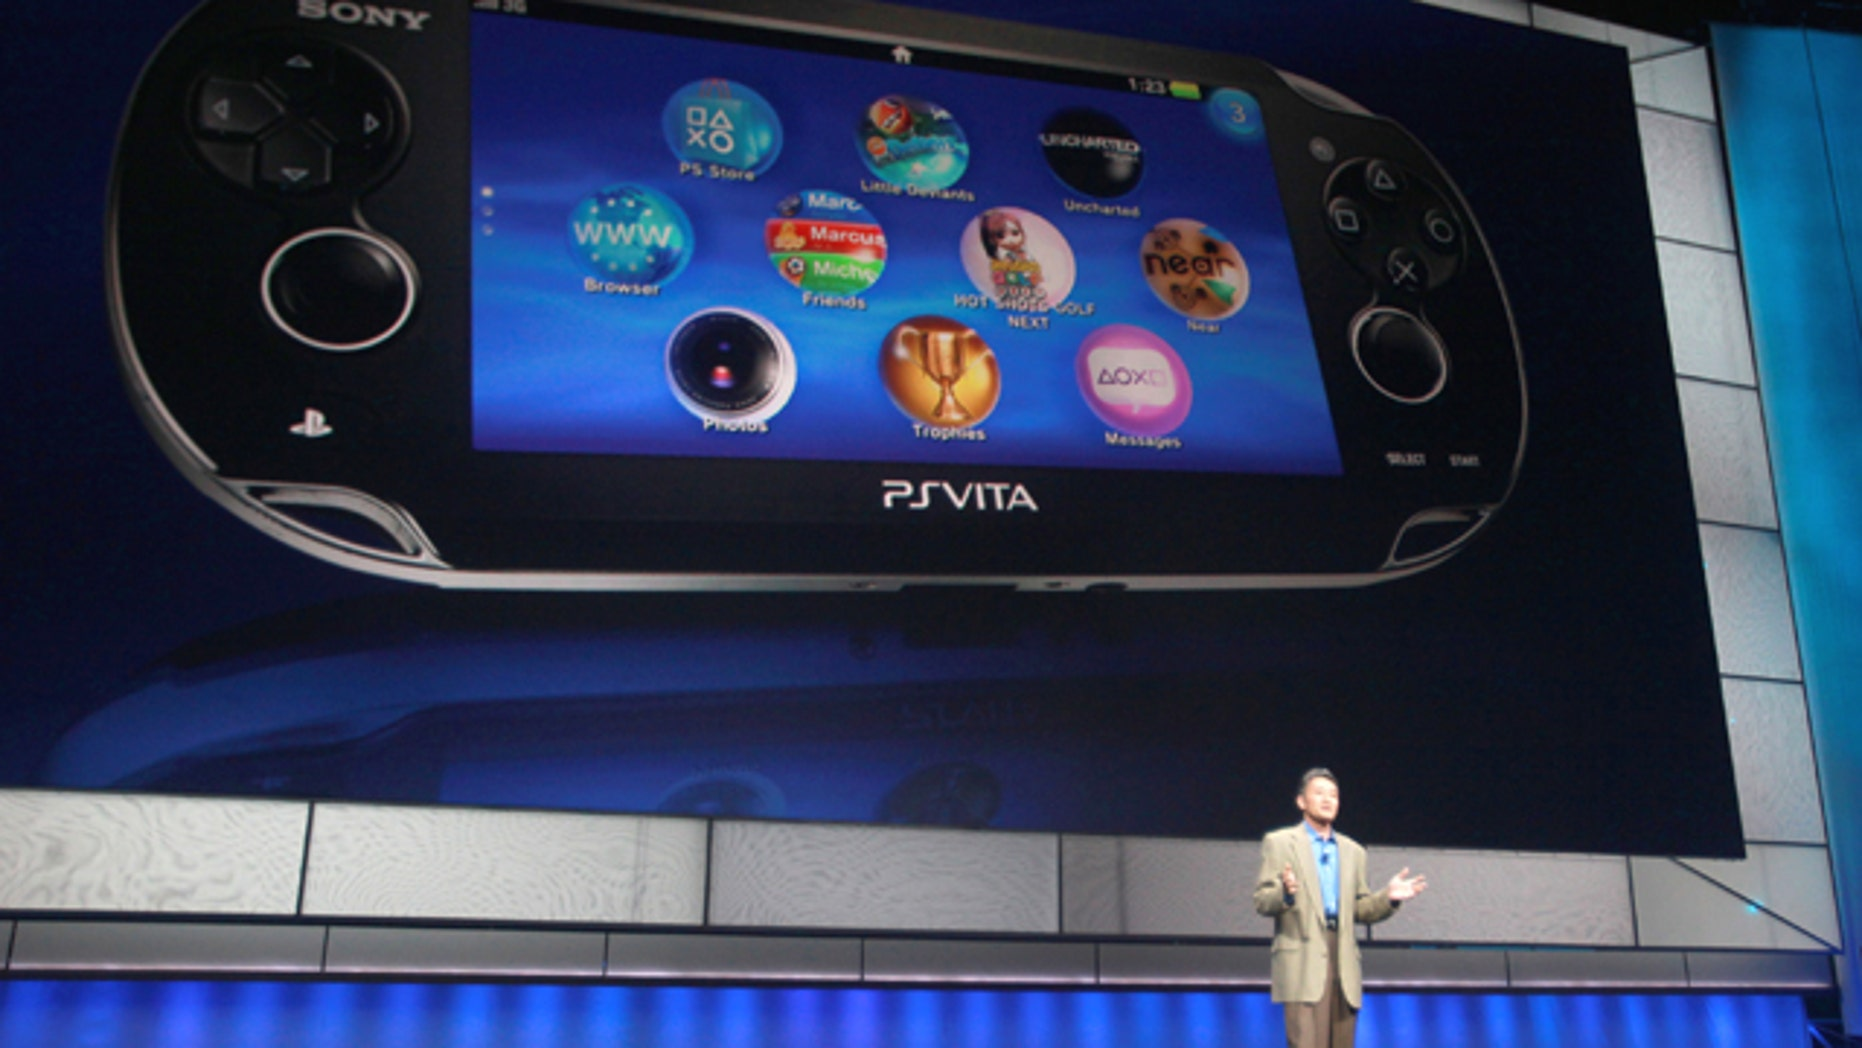 June 6, 2011: Kazuo Hirai, President and Group CEO of Sony Computer Entertainment, introduces the company's next generation portable gaming machine, PlayStation Vita, during a news conference at the E3 Gaming Convention in Los Angeles.